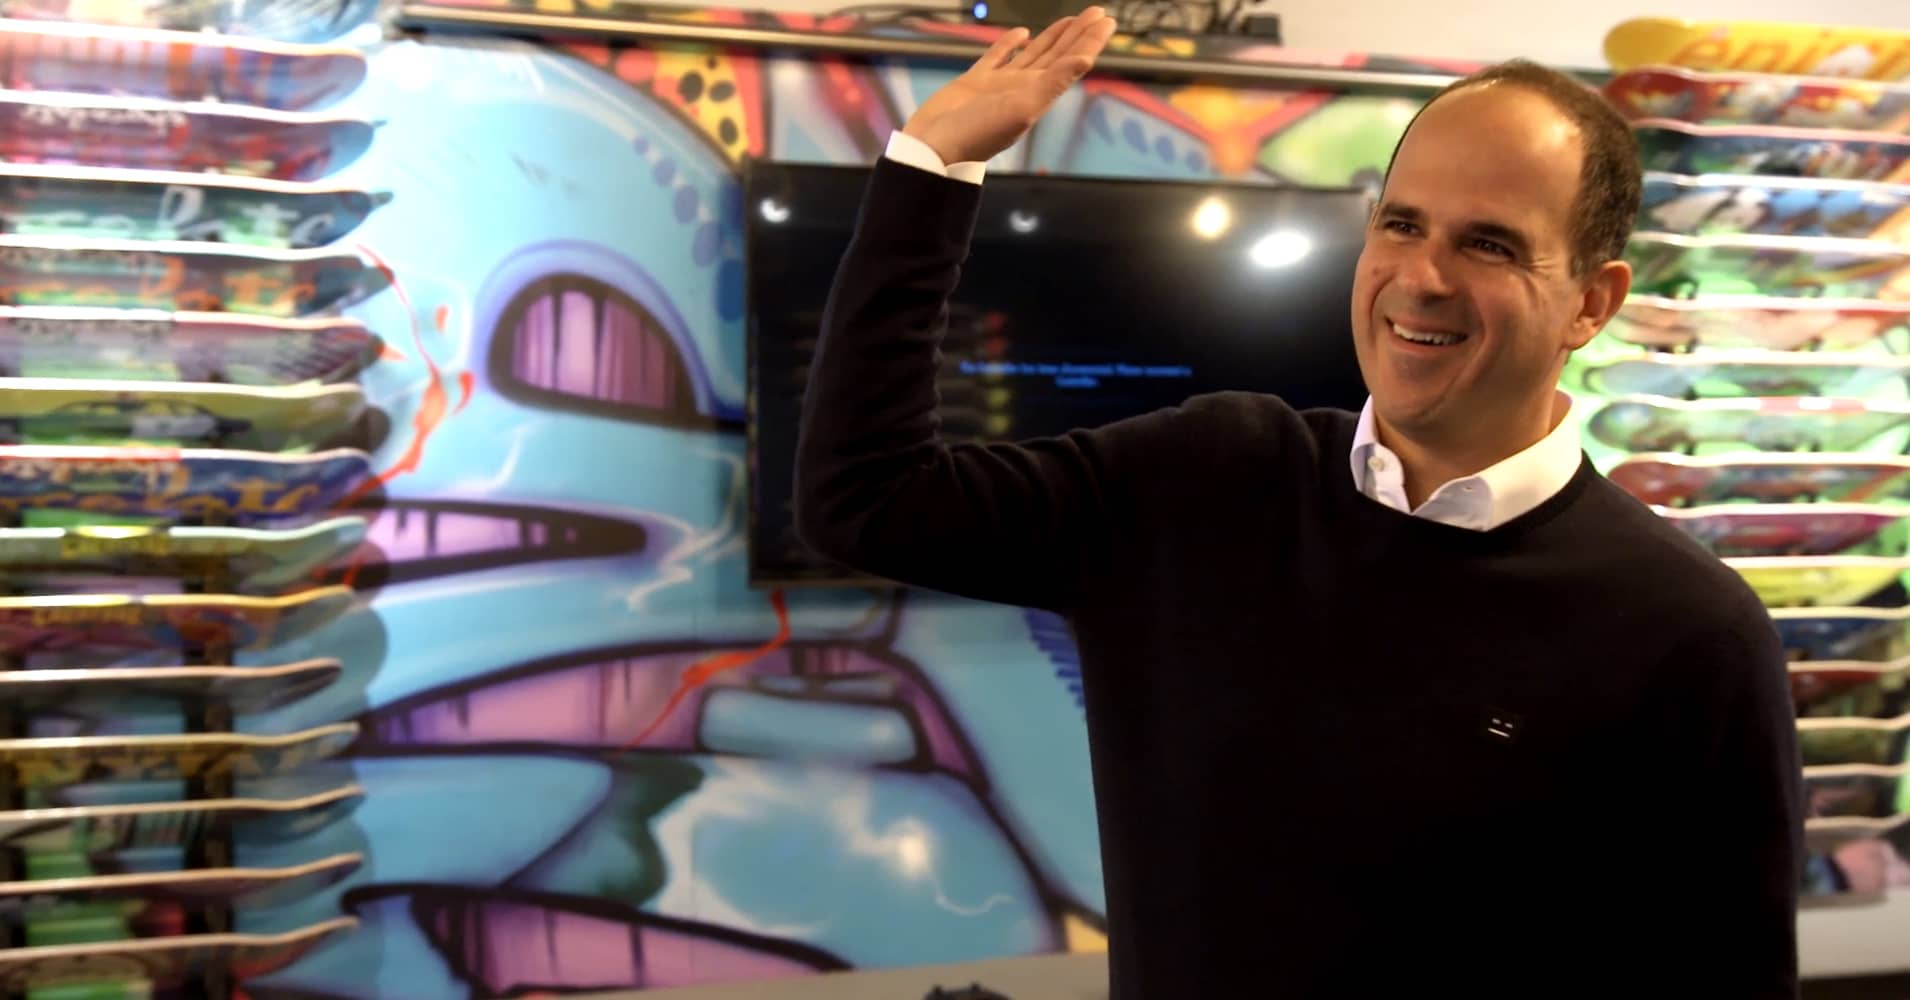 Marcus Lemonis high fives an employee after a successful renovation.